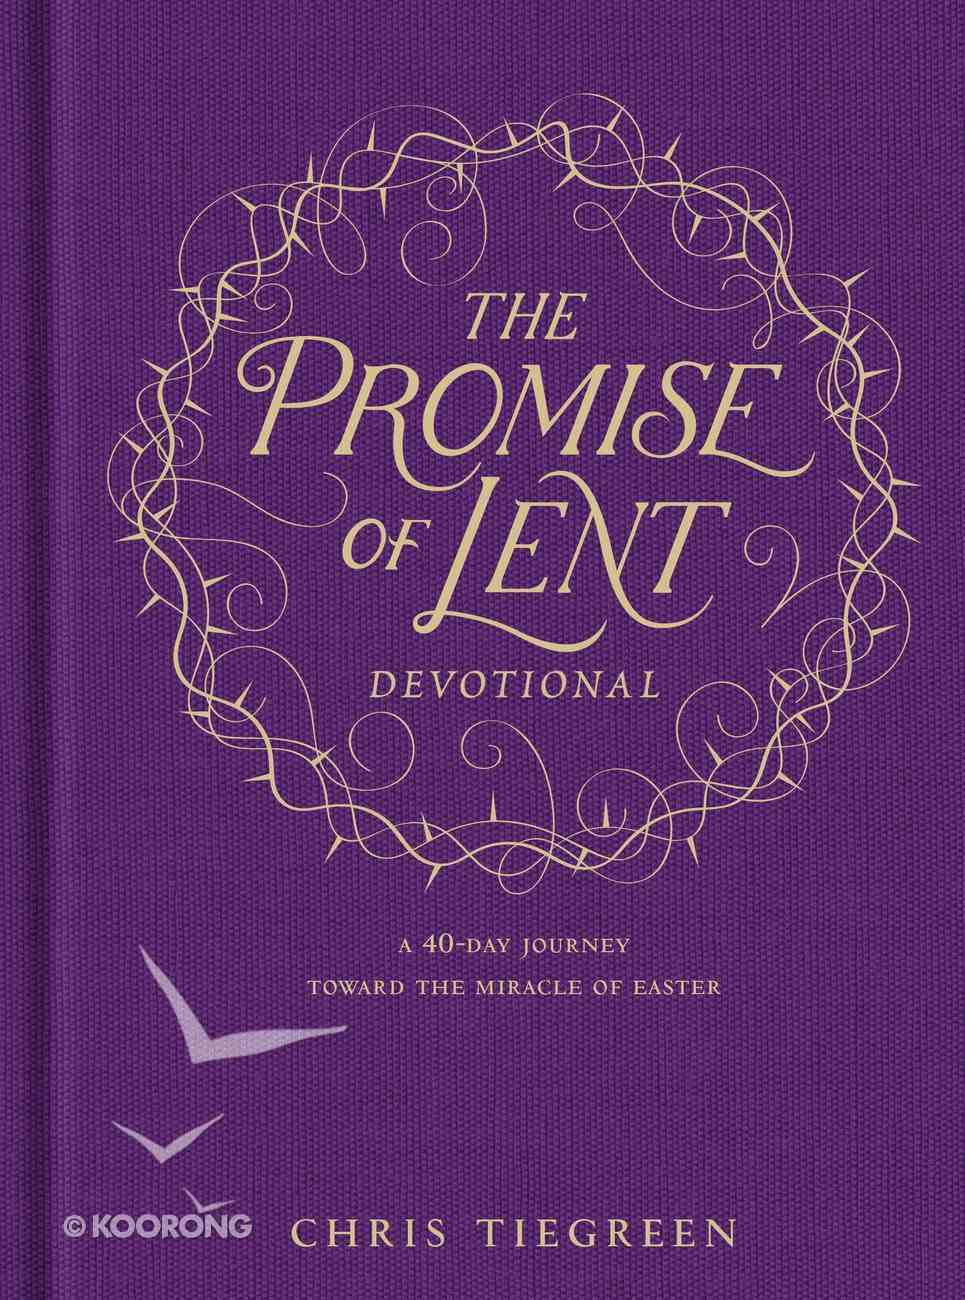 The Promise of Lent Devotional: A 40-Day Journey Toward the Miracle of Easter Hardback